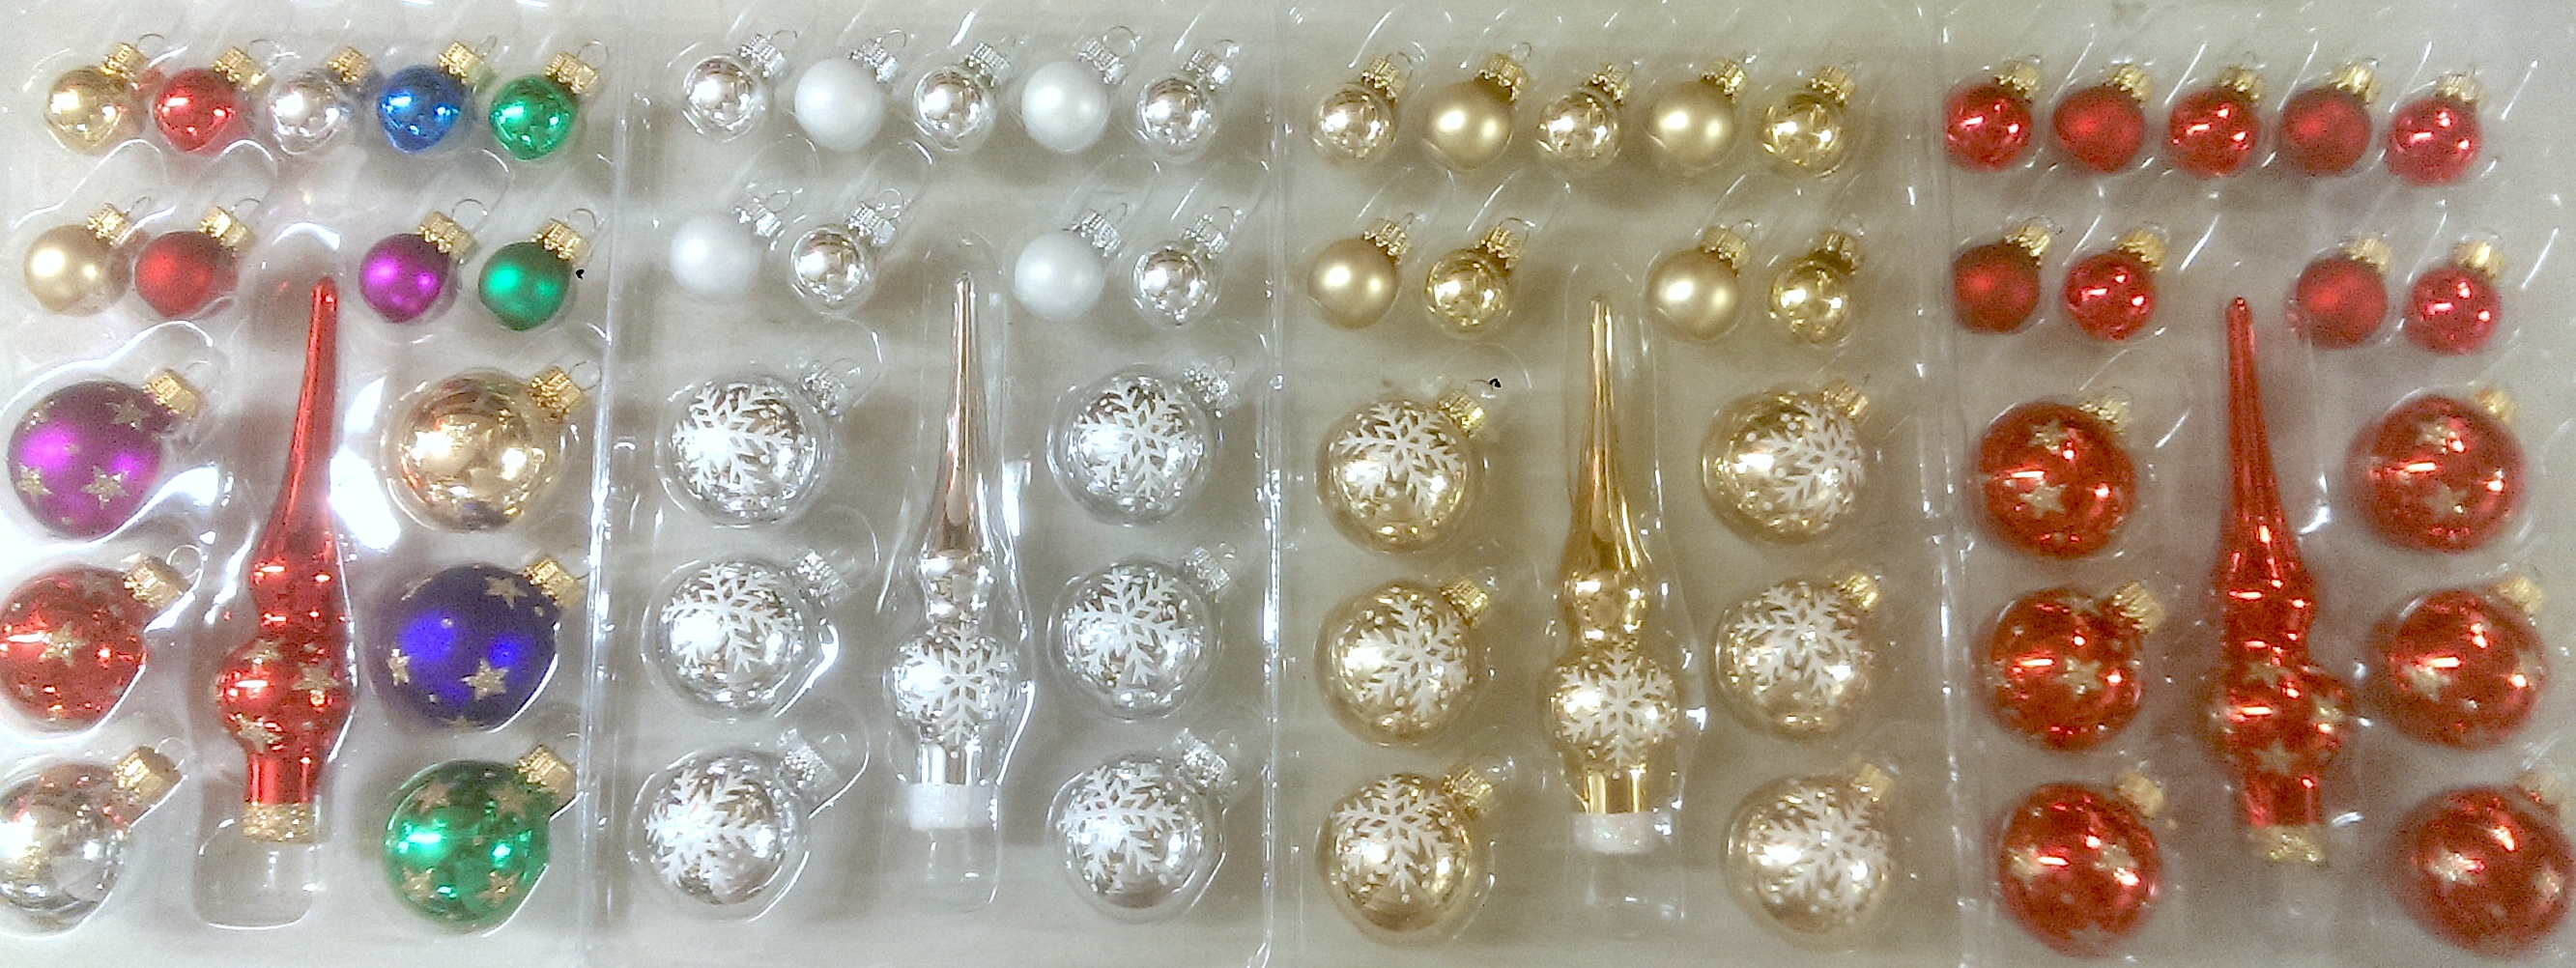 miniature boxed balls and mini tree toppers